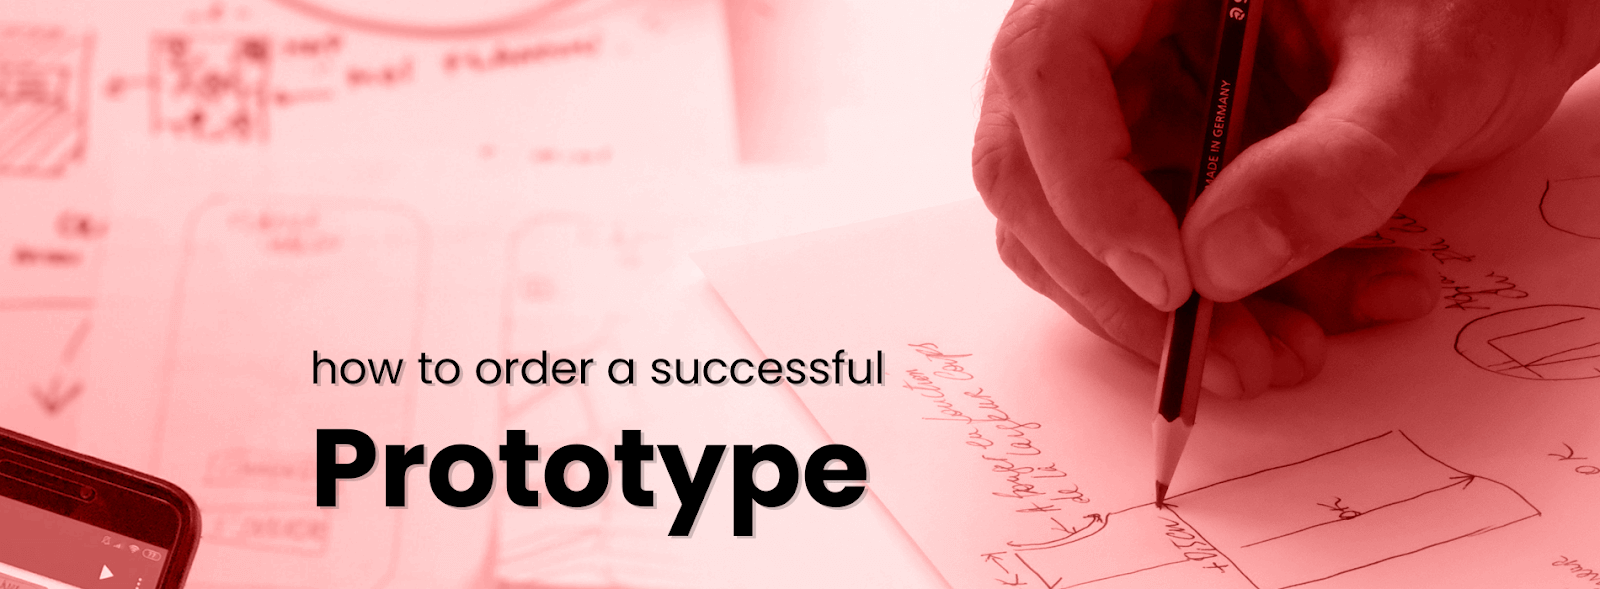 Successful Prototyping Article Header